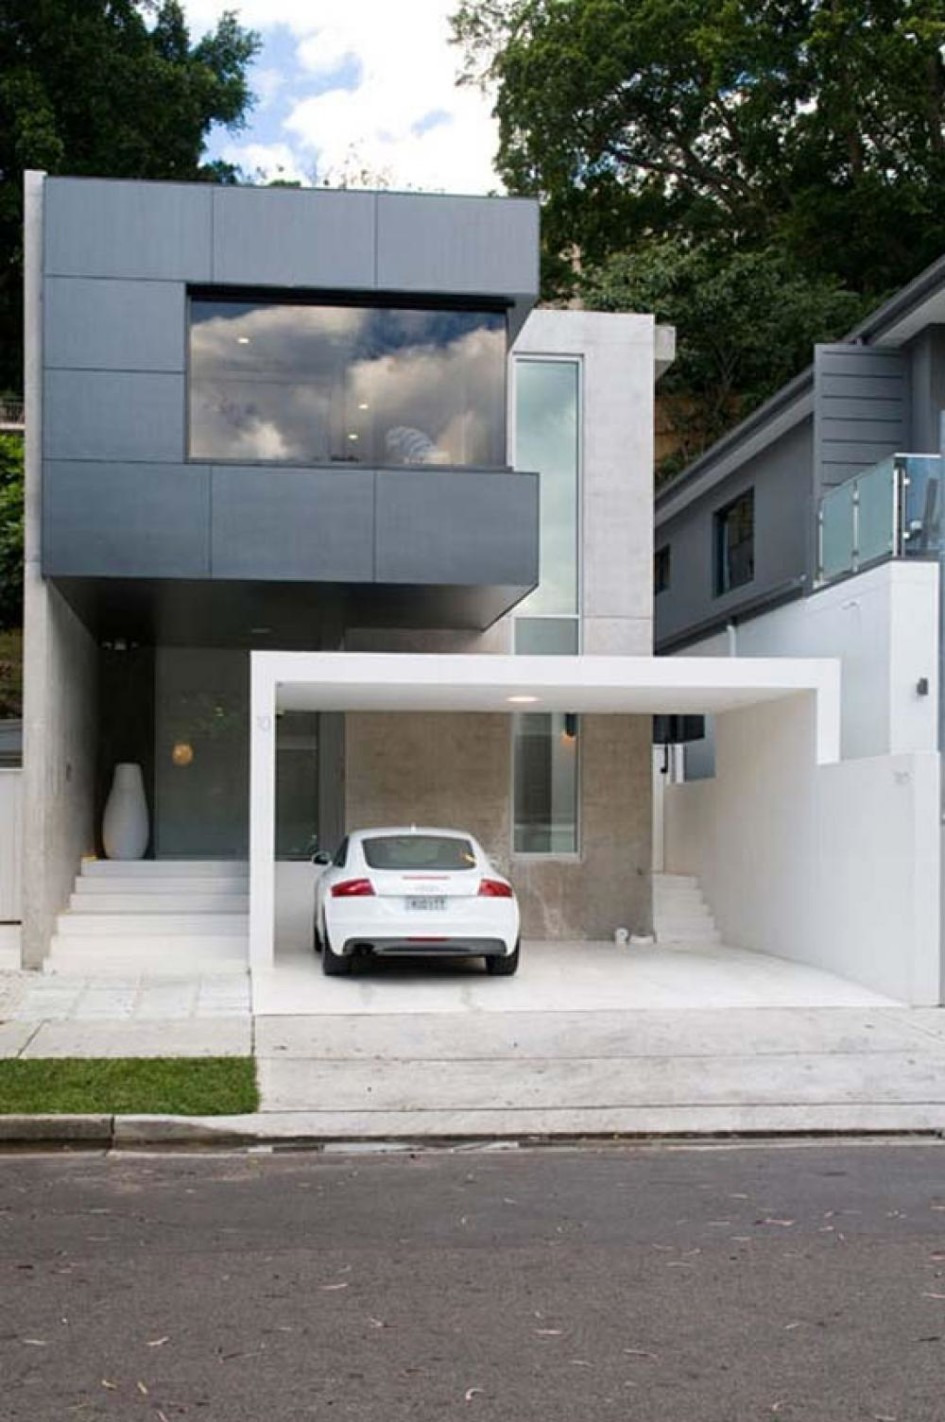 minimalist house architecture with black facade design color equipped with garage design outdoor